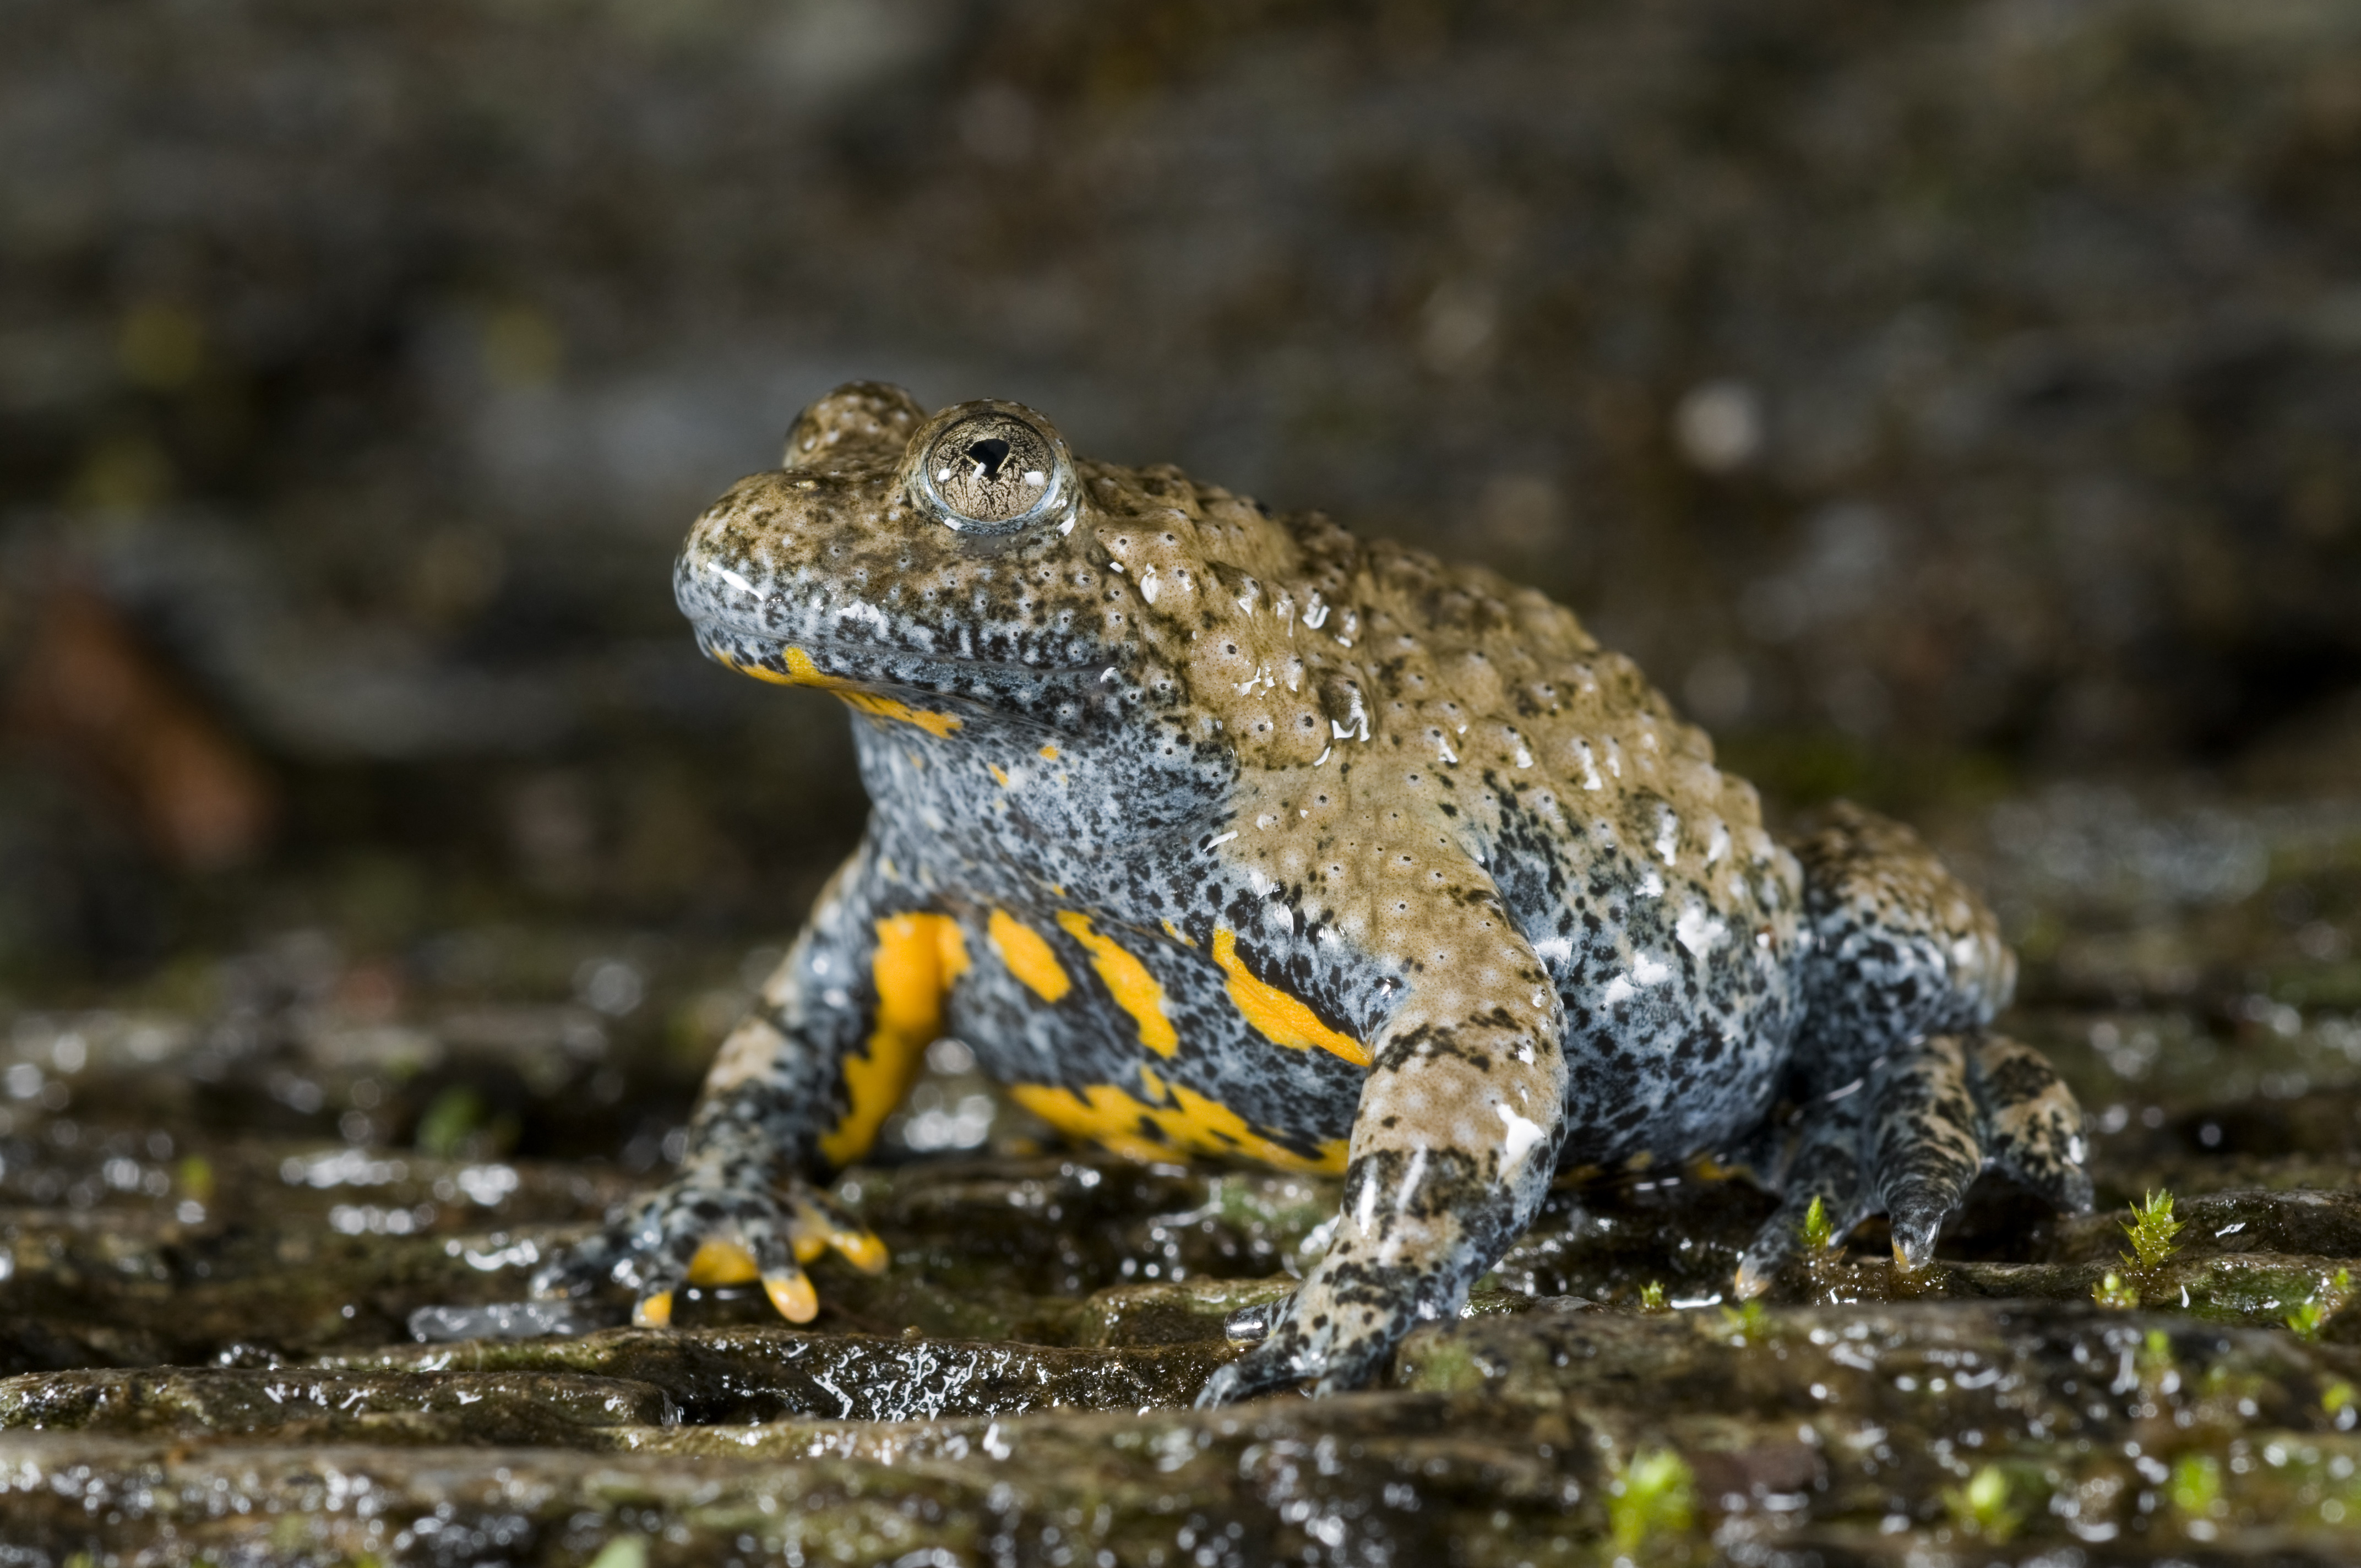 Appenine yellow-bellied toad (Bombina pachypus)